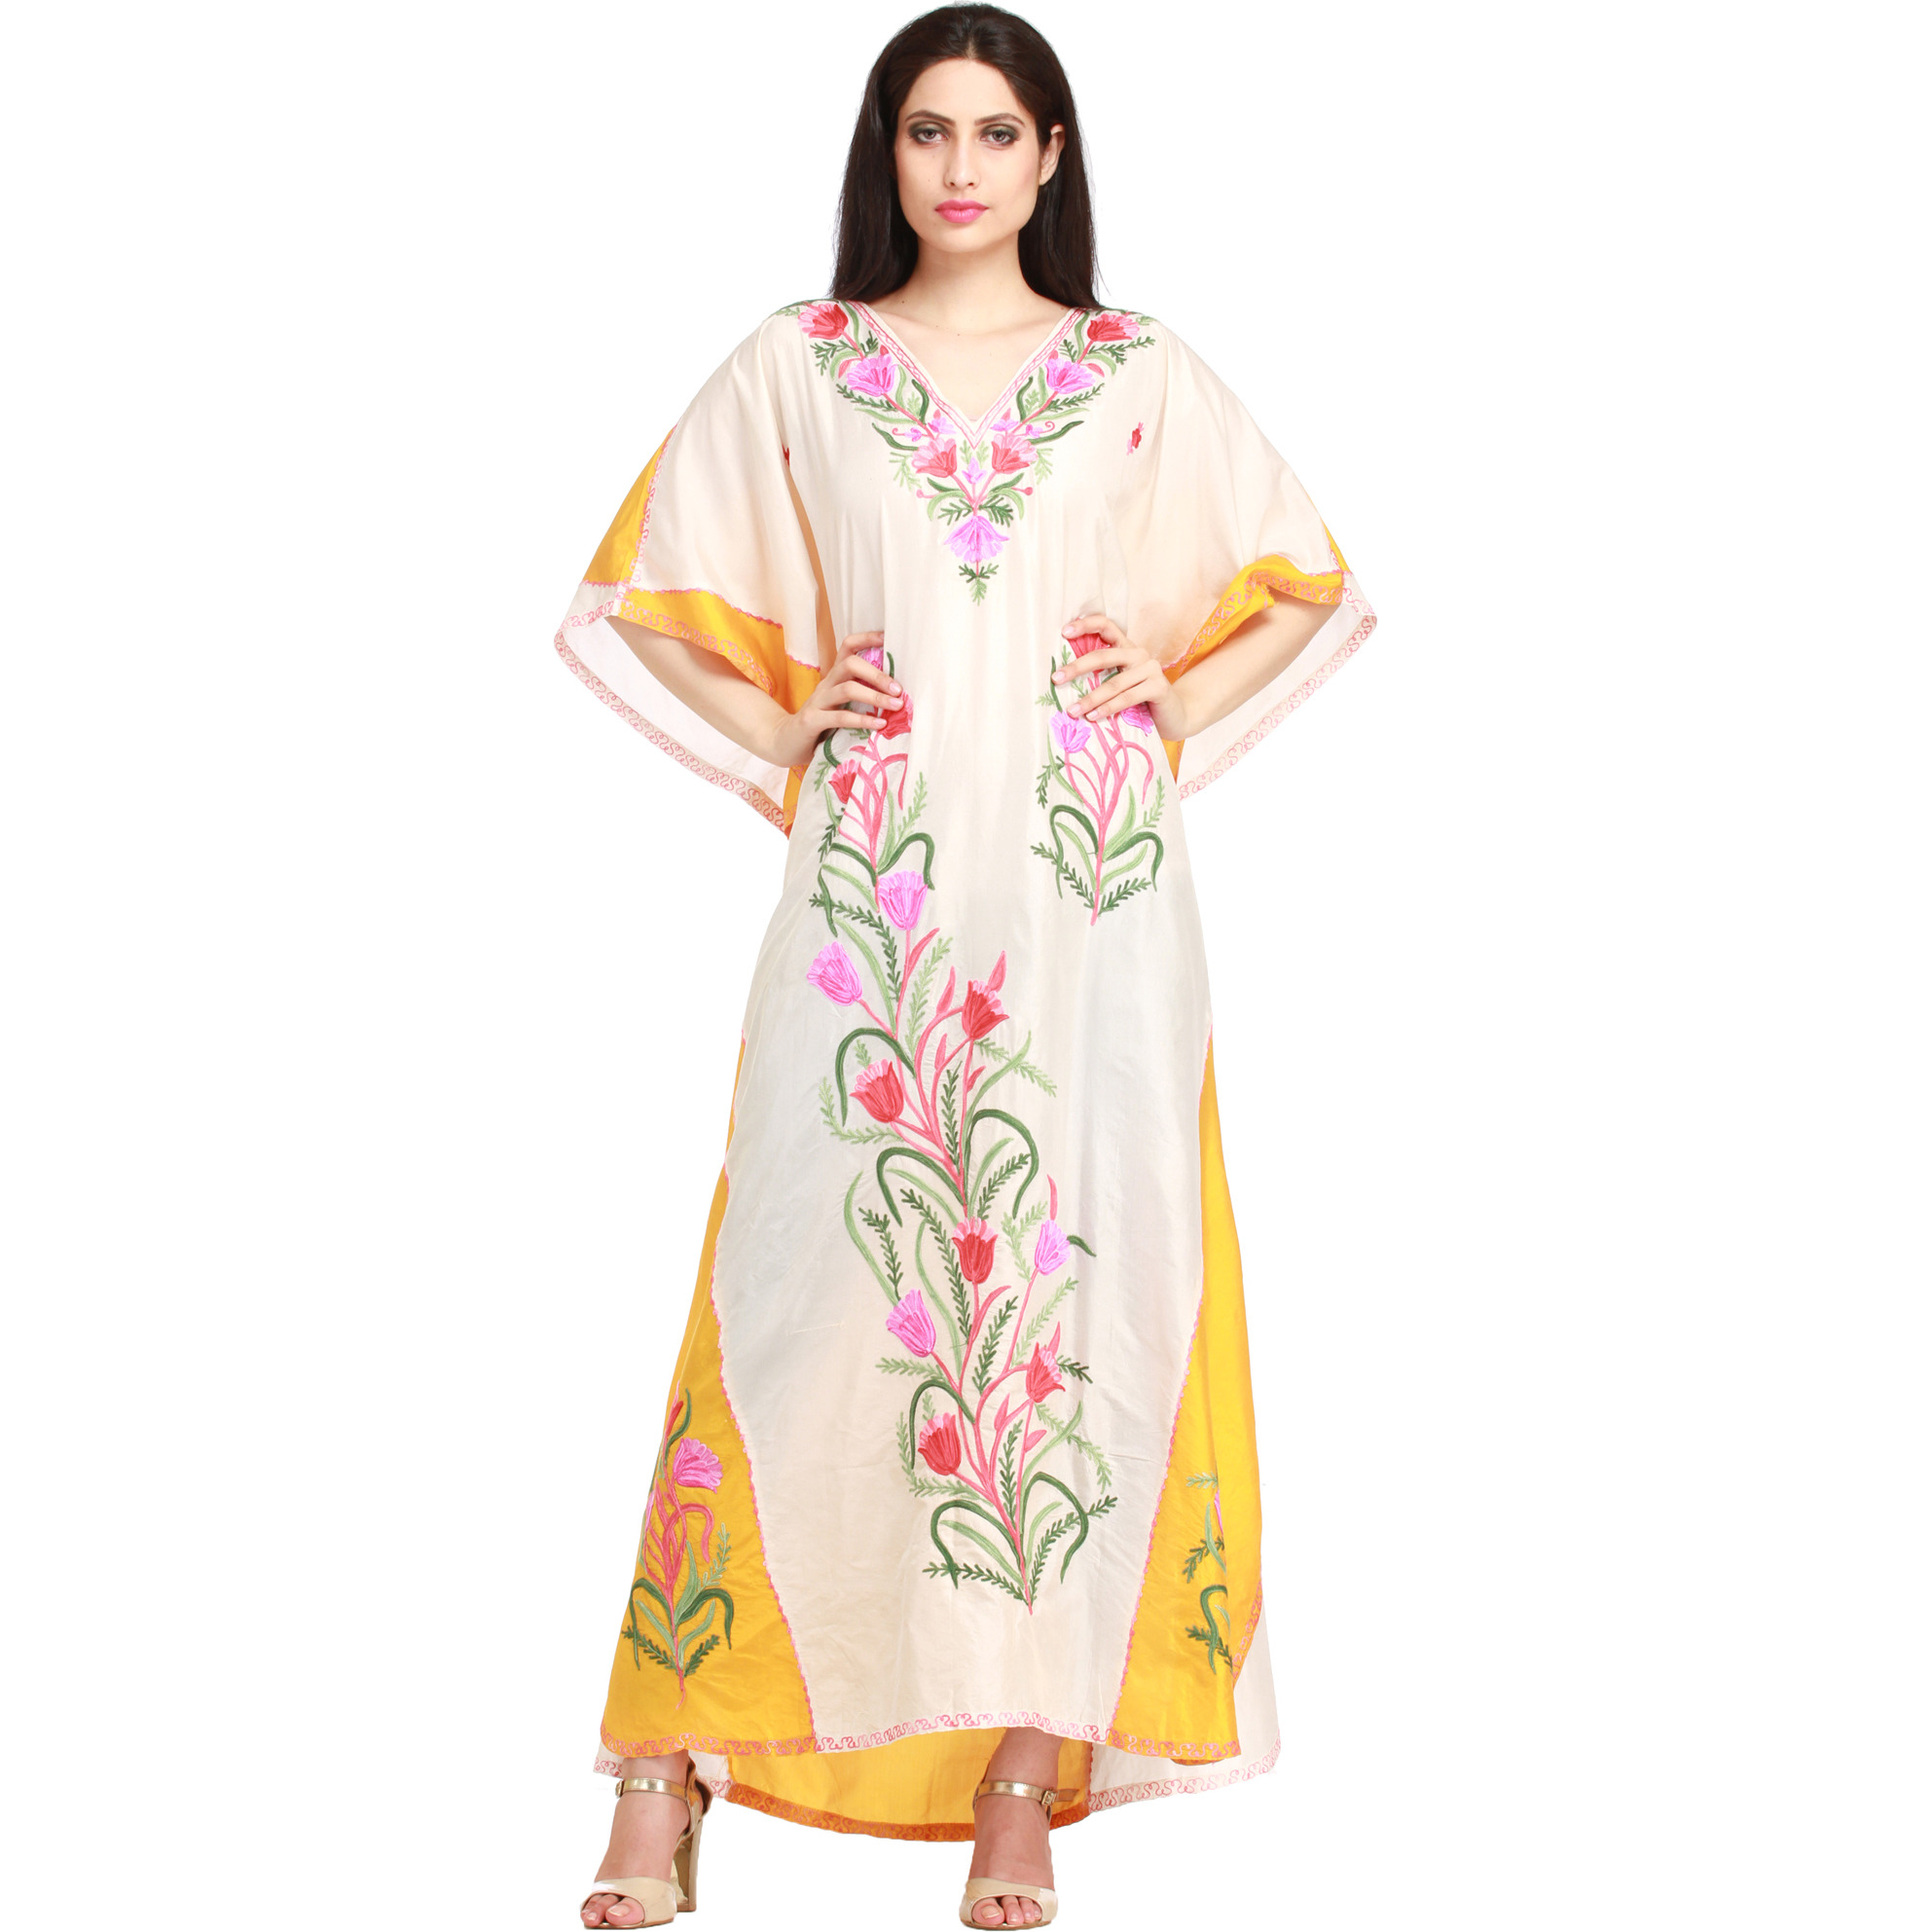 Powder-Puff and Yellow Kaftan from Kashmir with Floral Ari-Embroidery